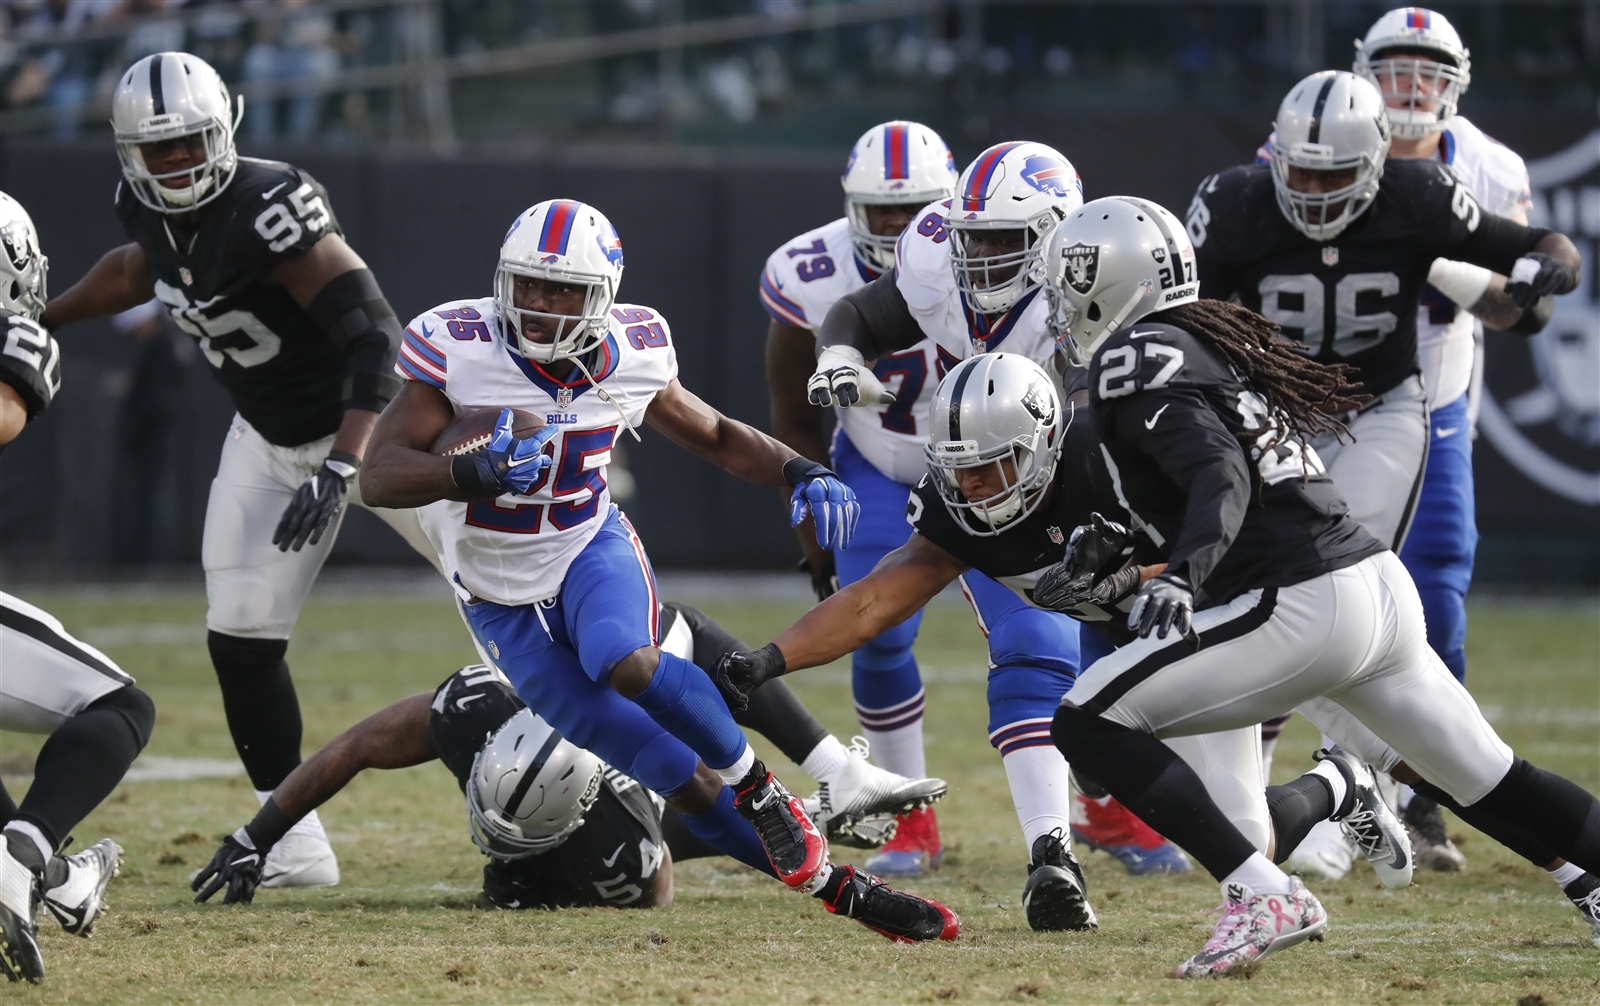 Bills running back LeSean McCoy is hopeful for a different outcome than what happened last December in Oakland. (Harry Scull Jr./Buffalo News)